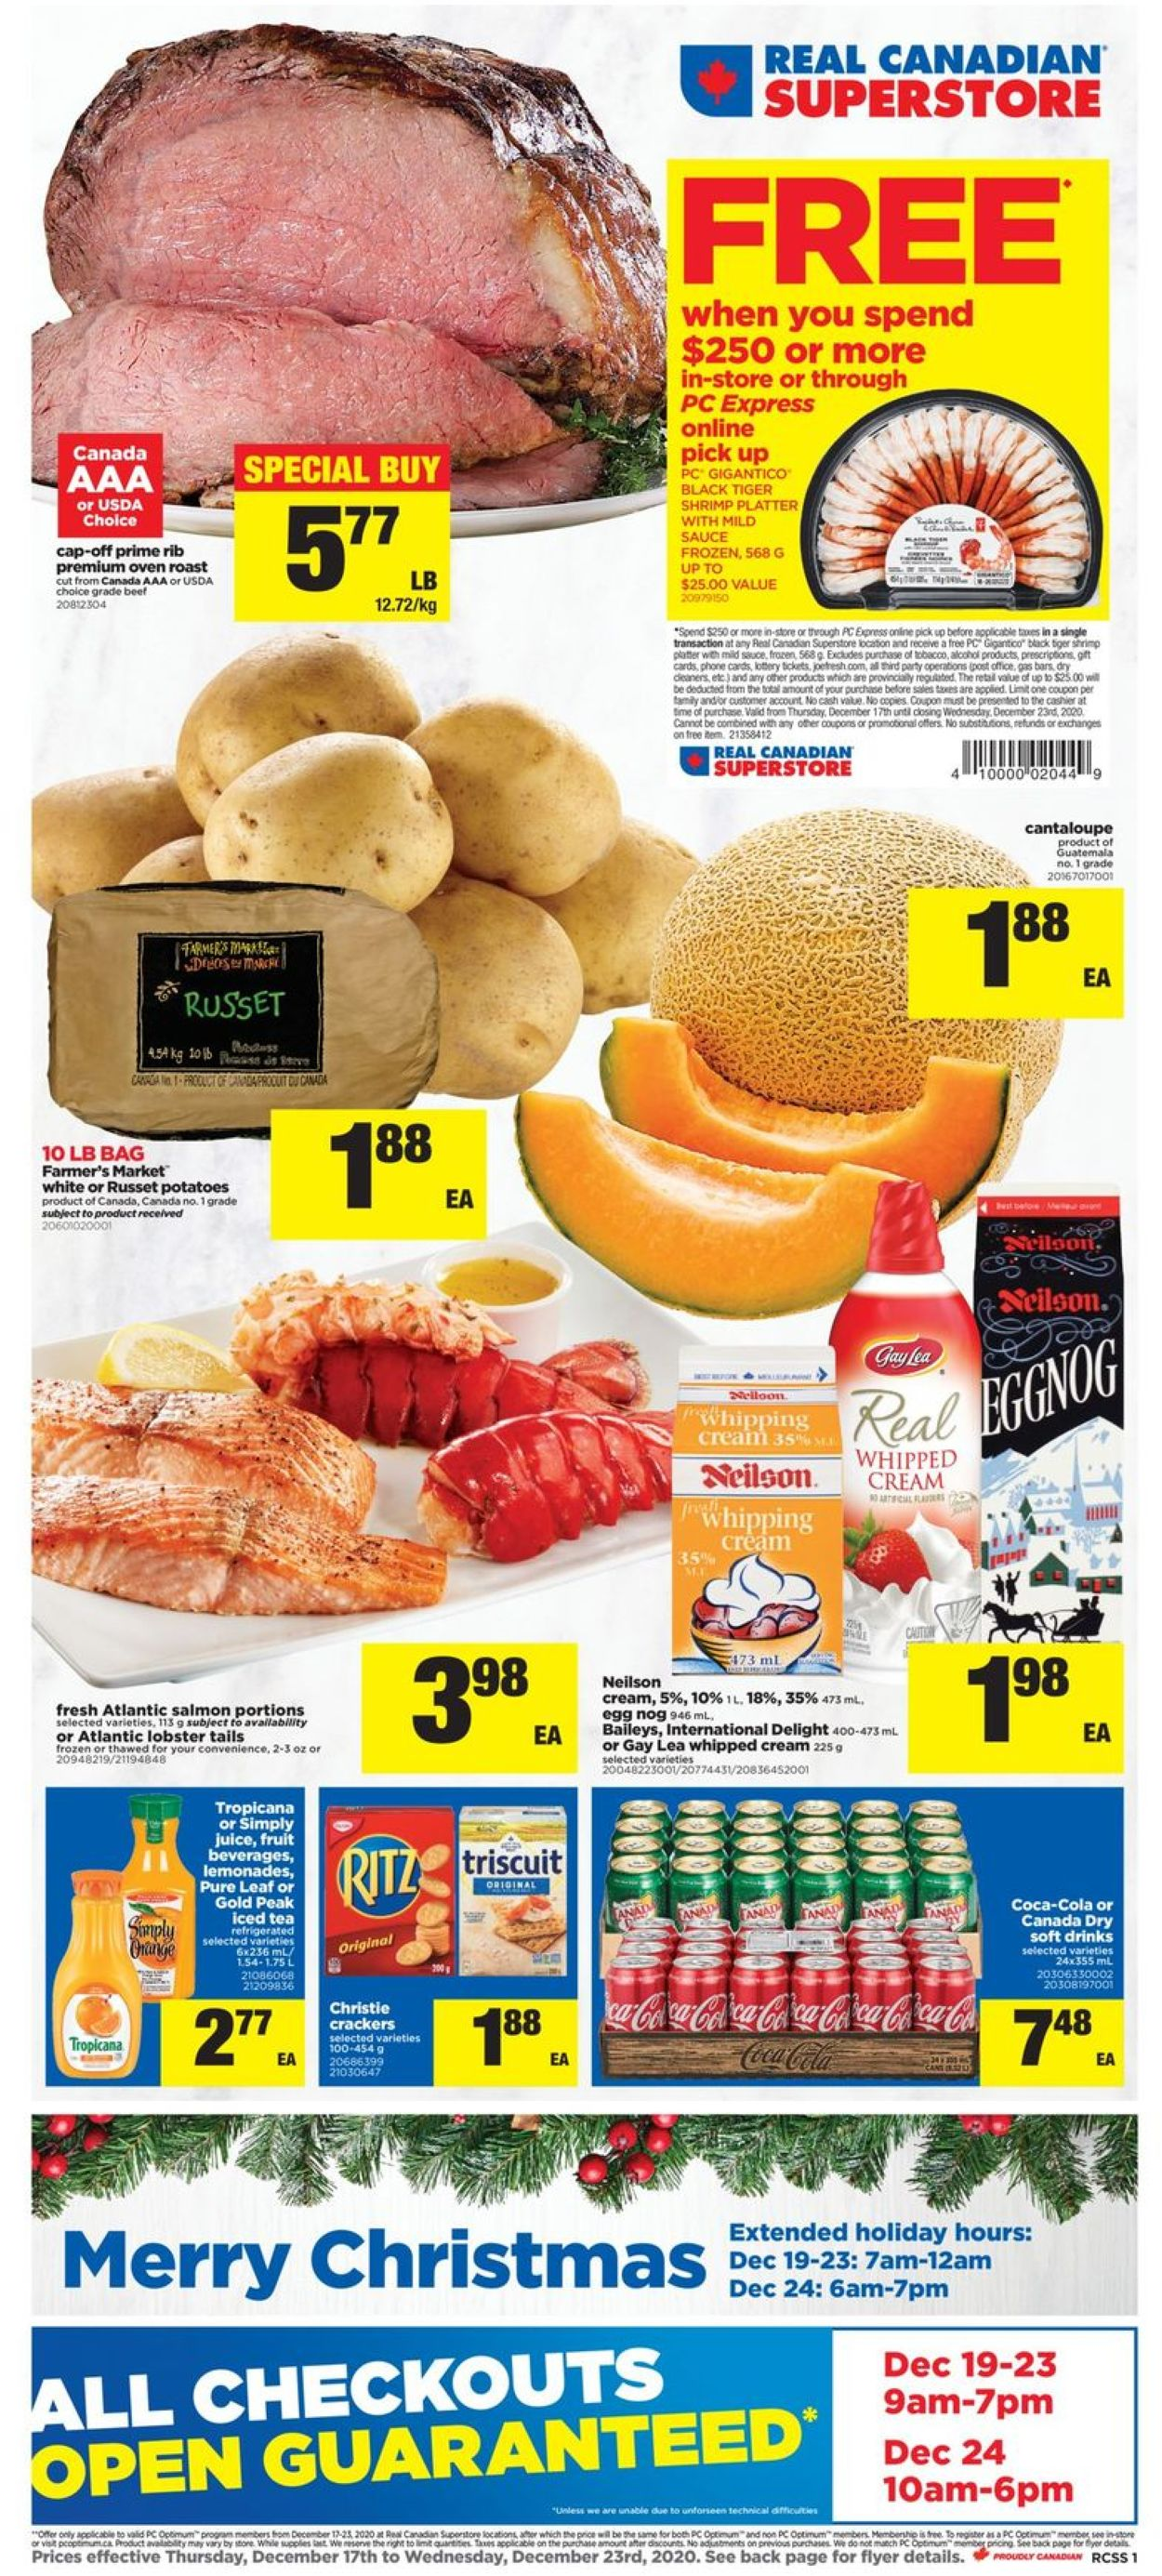 Real Canadian Superstore - Holiday 2020 Flyer - 12/17-12/23/2020